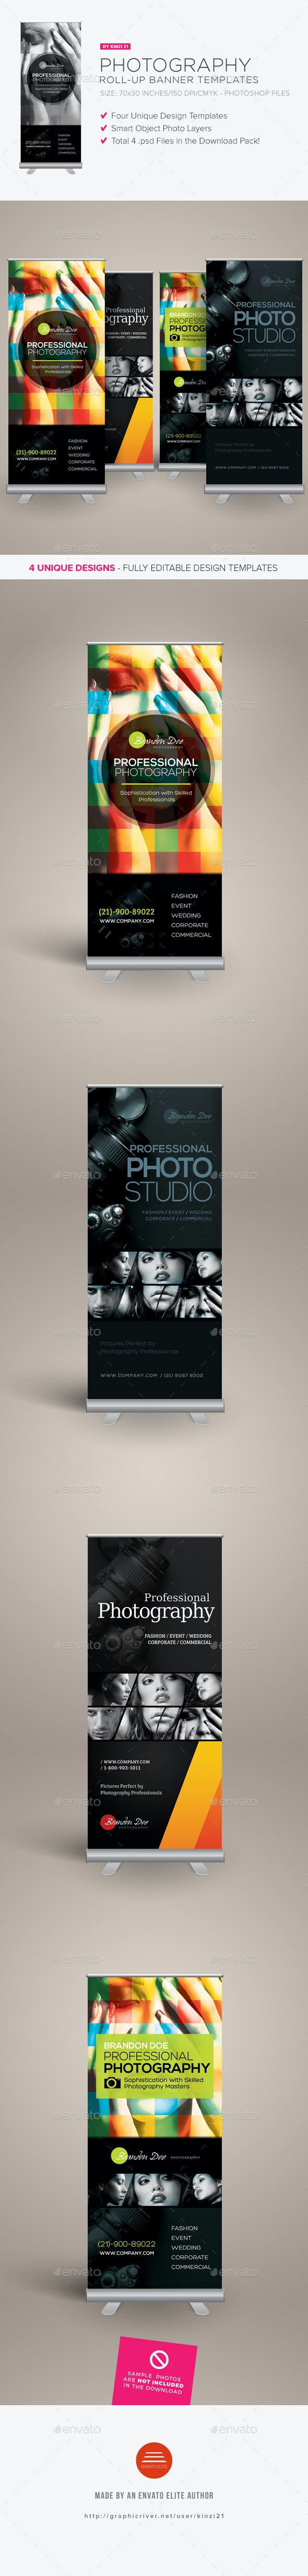 Photography Roll-up Banners - Signage Print Templates